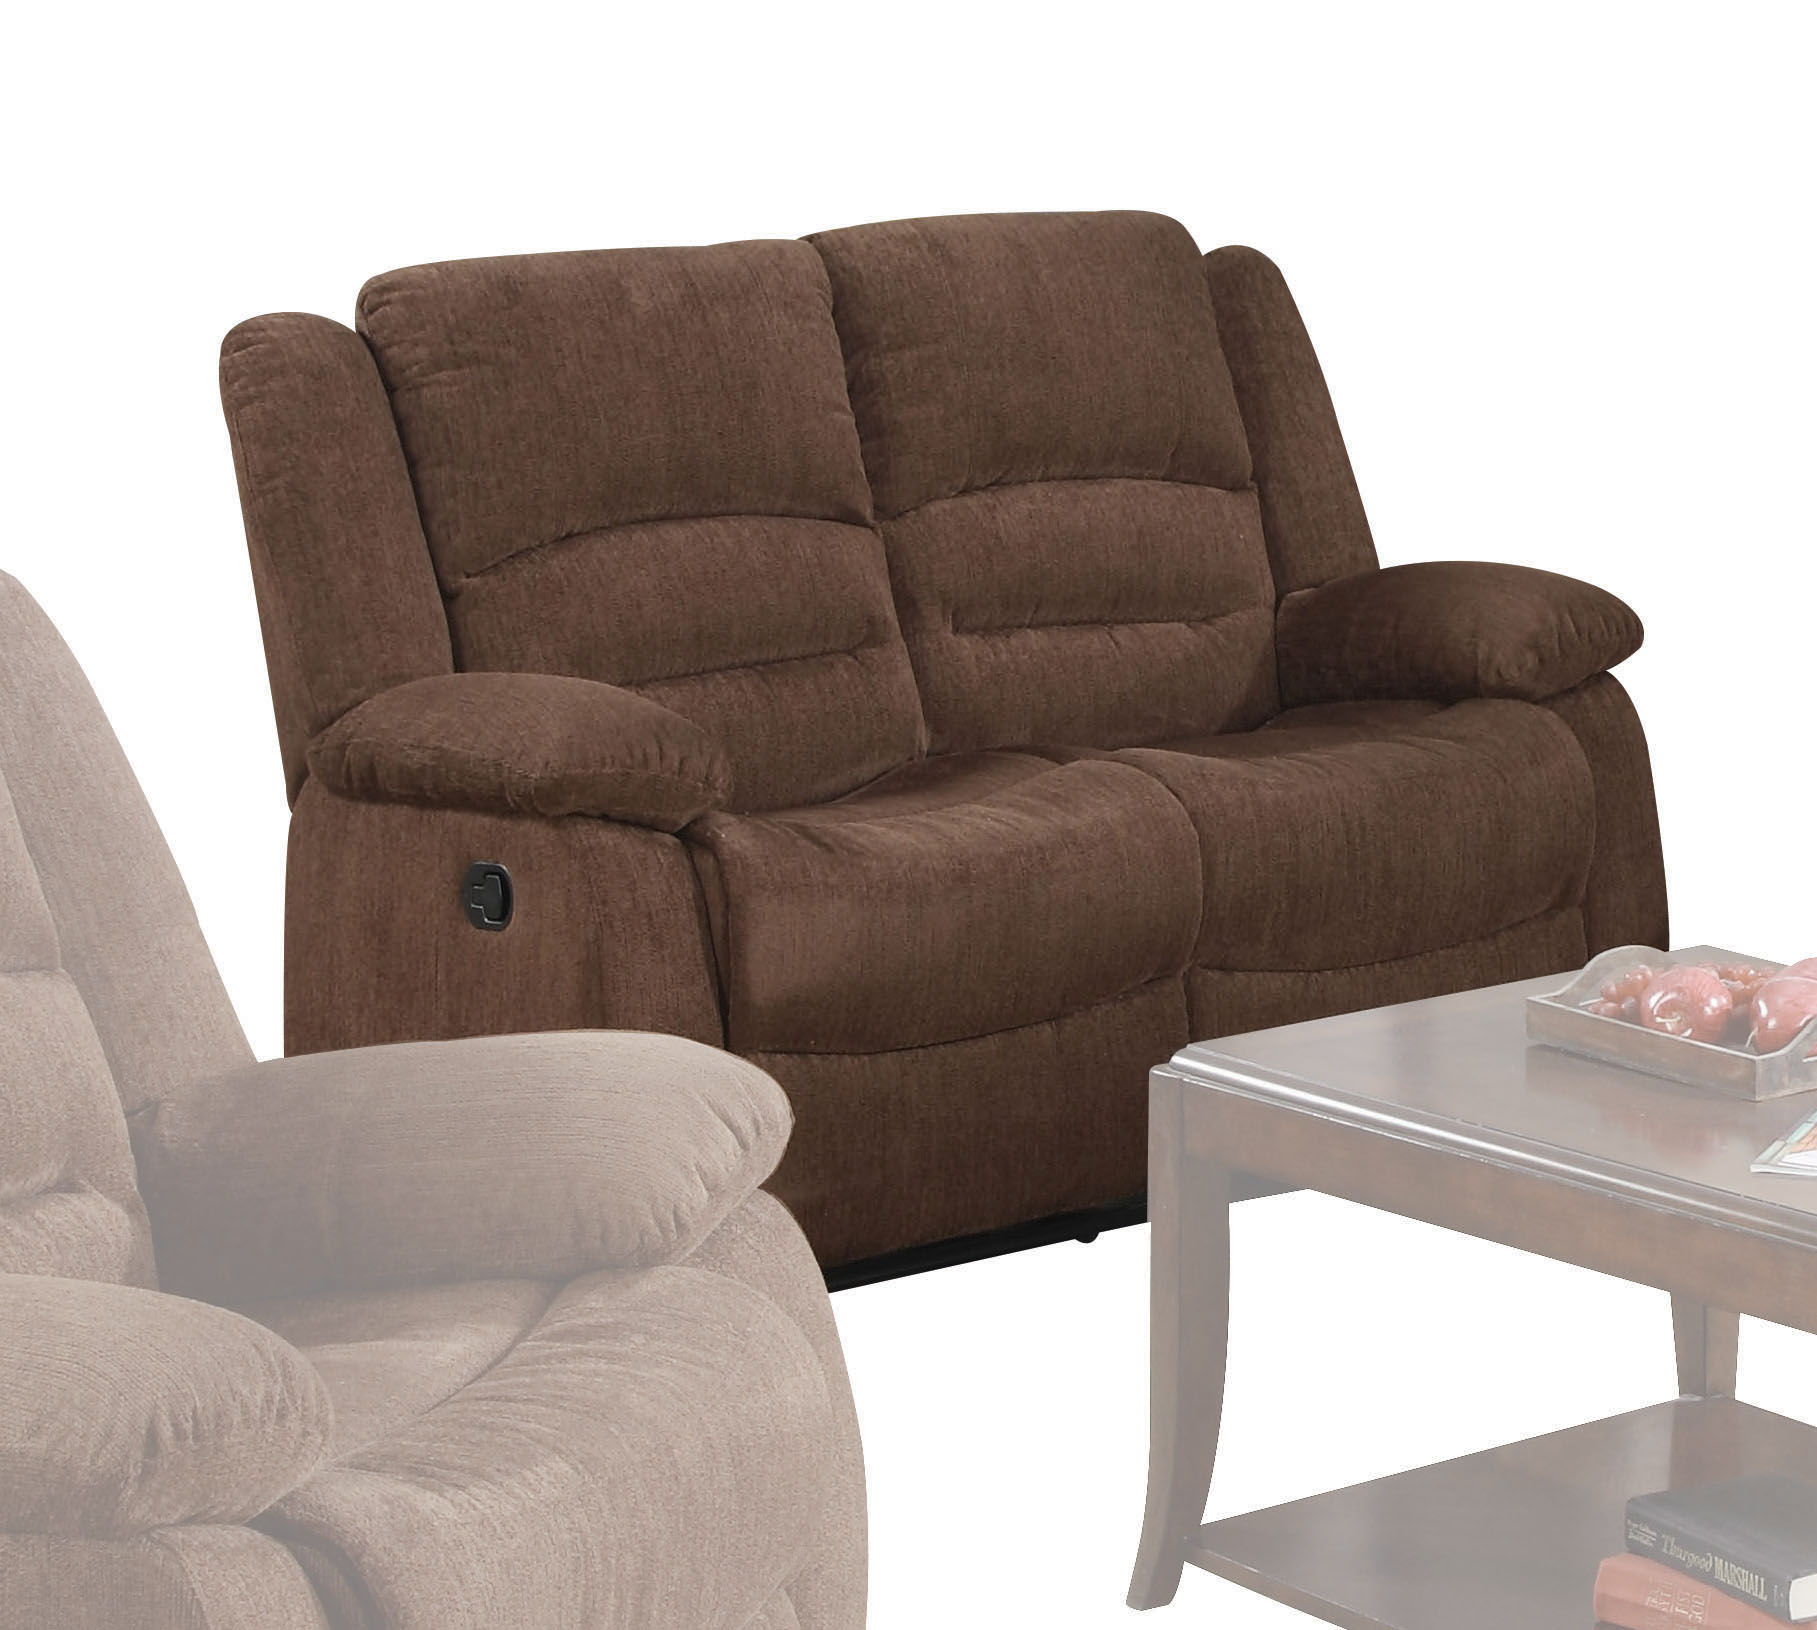 ACME Bailey Reclining Loveseat in Dark Brown Chenille by Acme Furniture